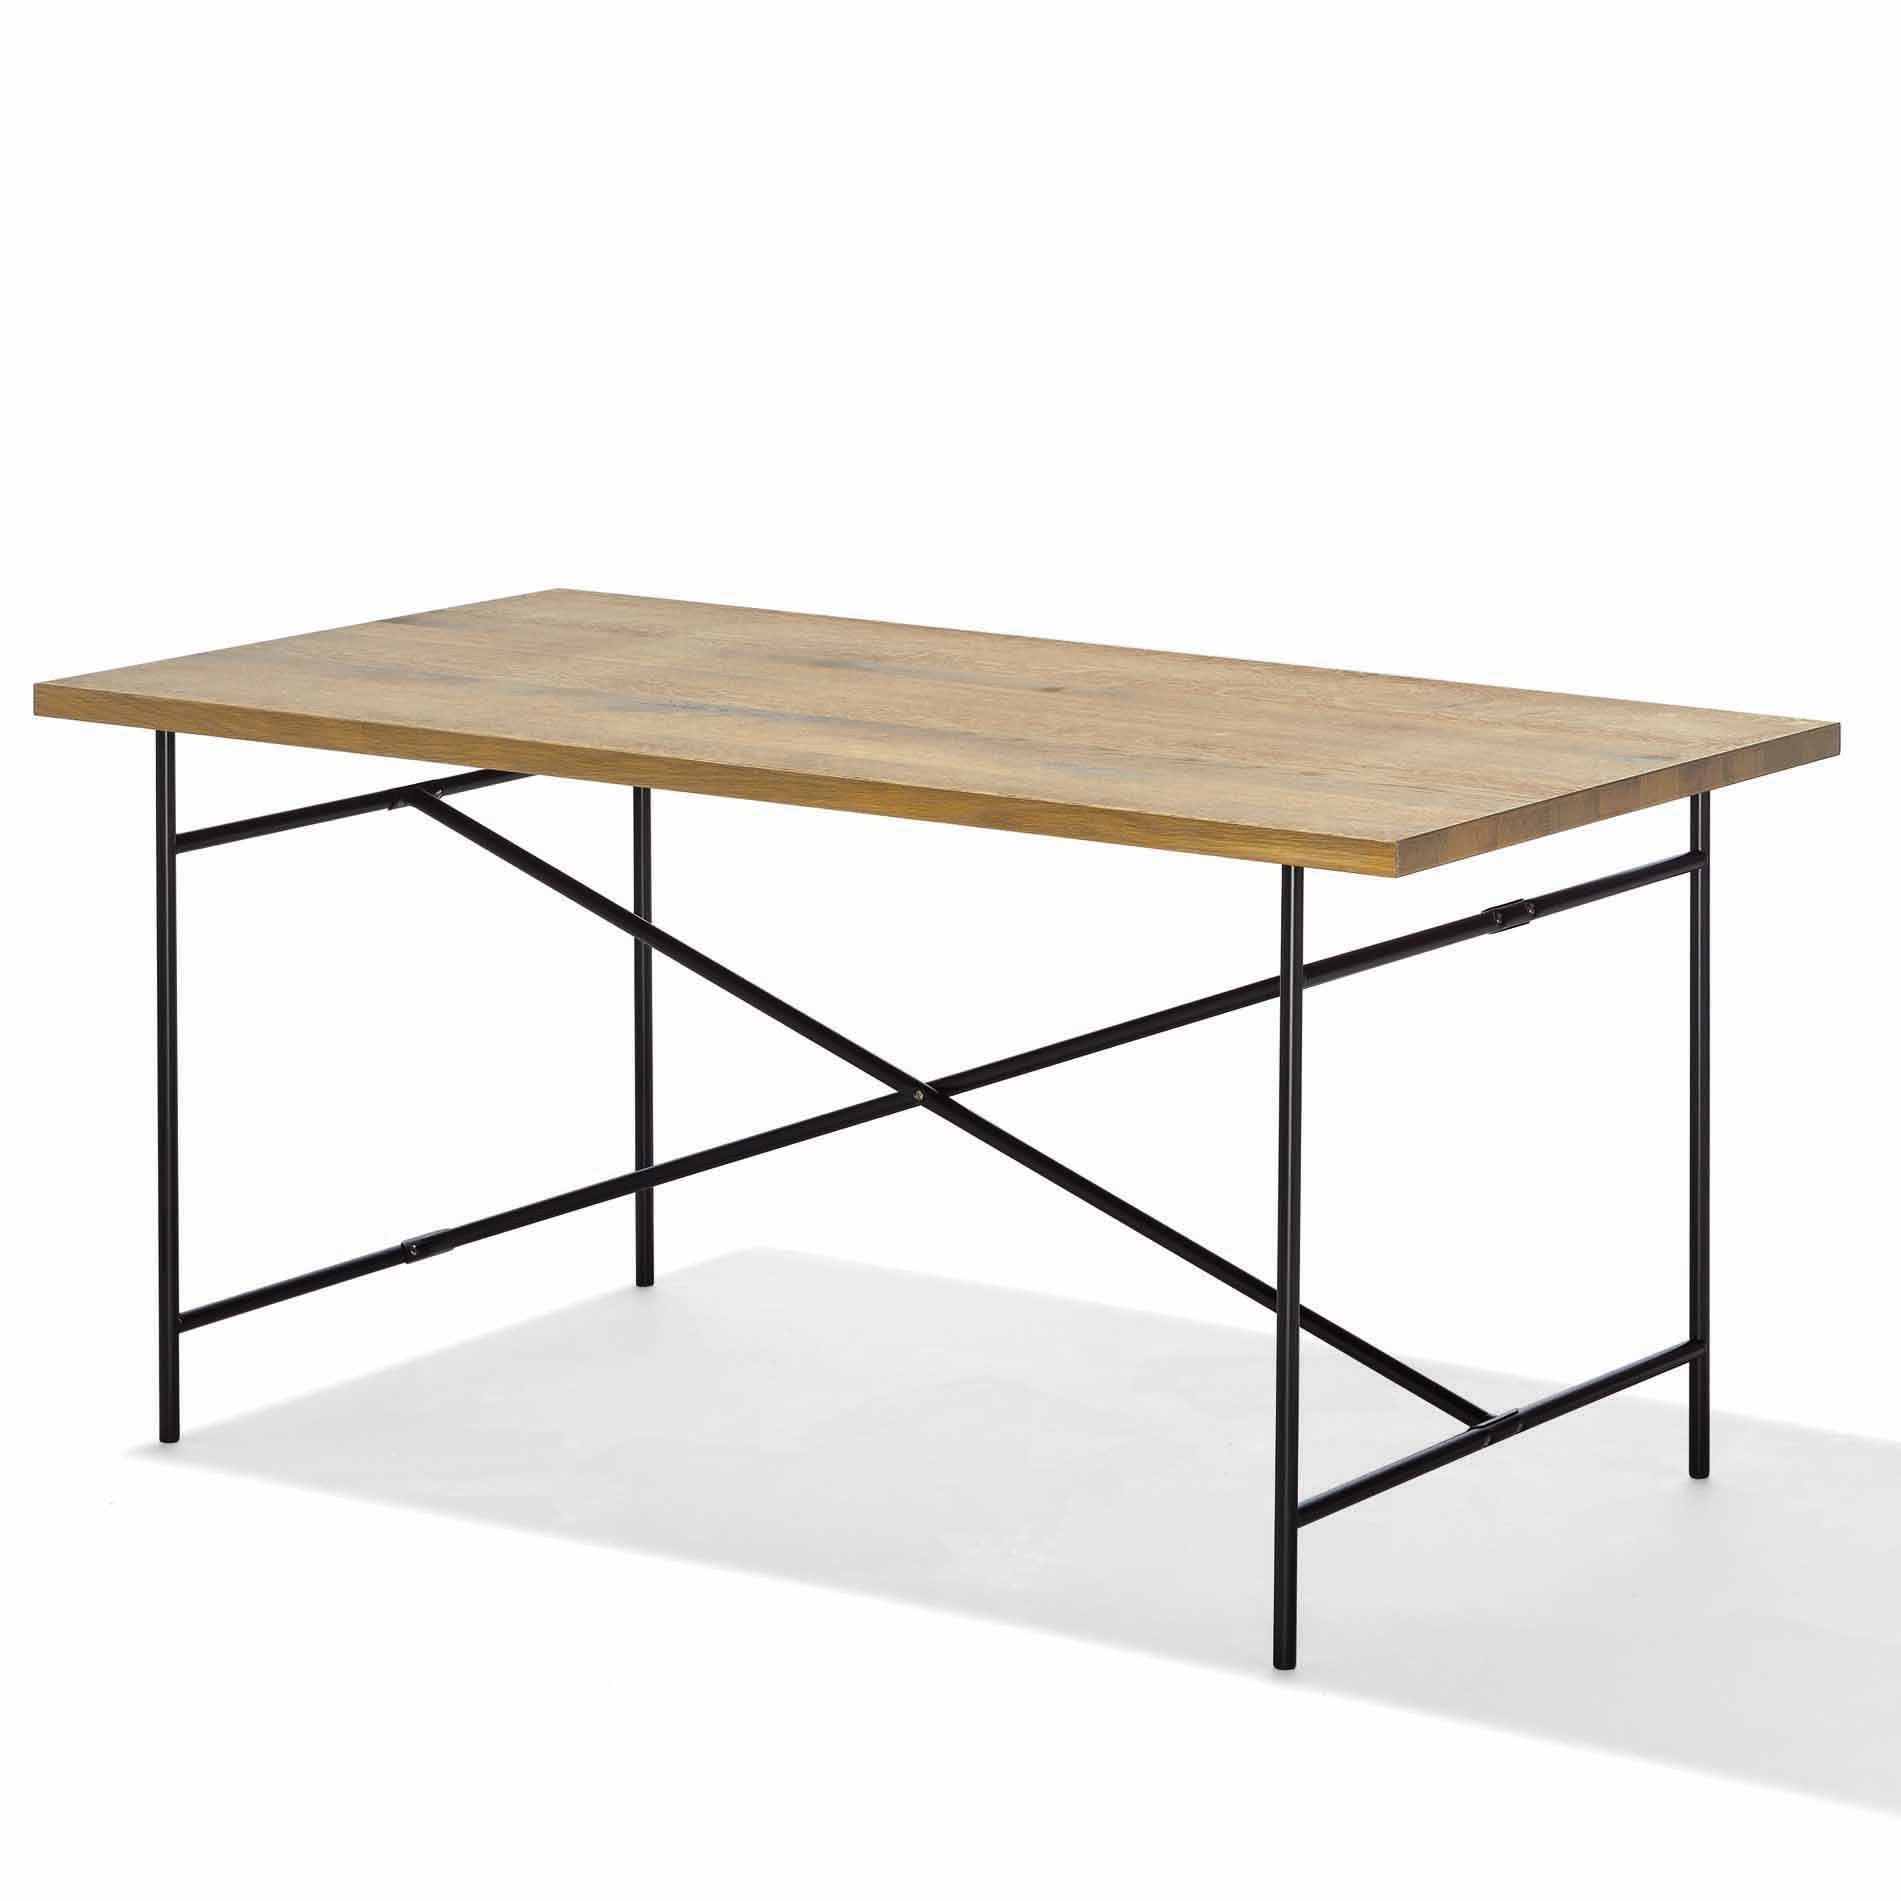 Eiermann Esstisch richard lert eiermann 2 dining table stillfried wien york